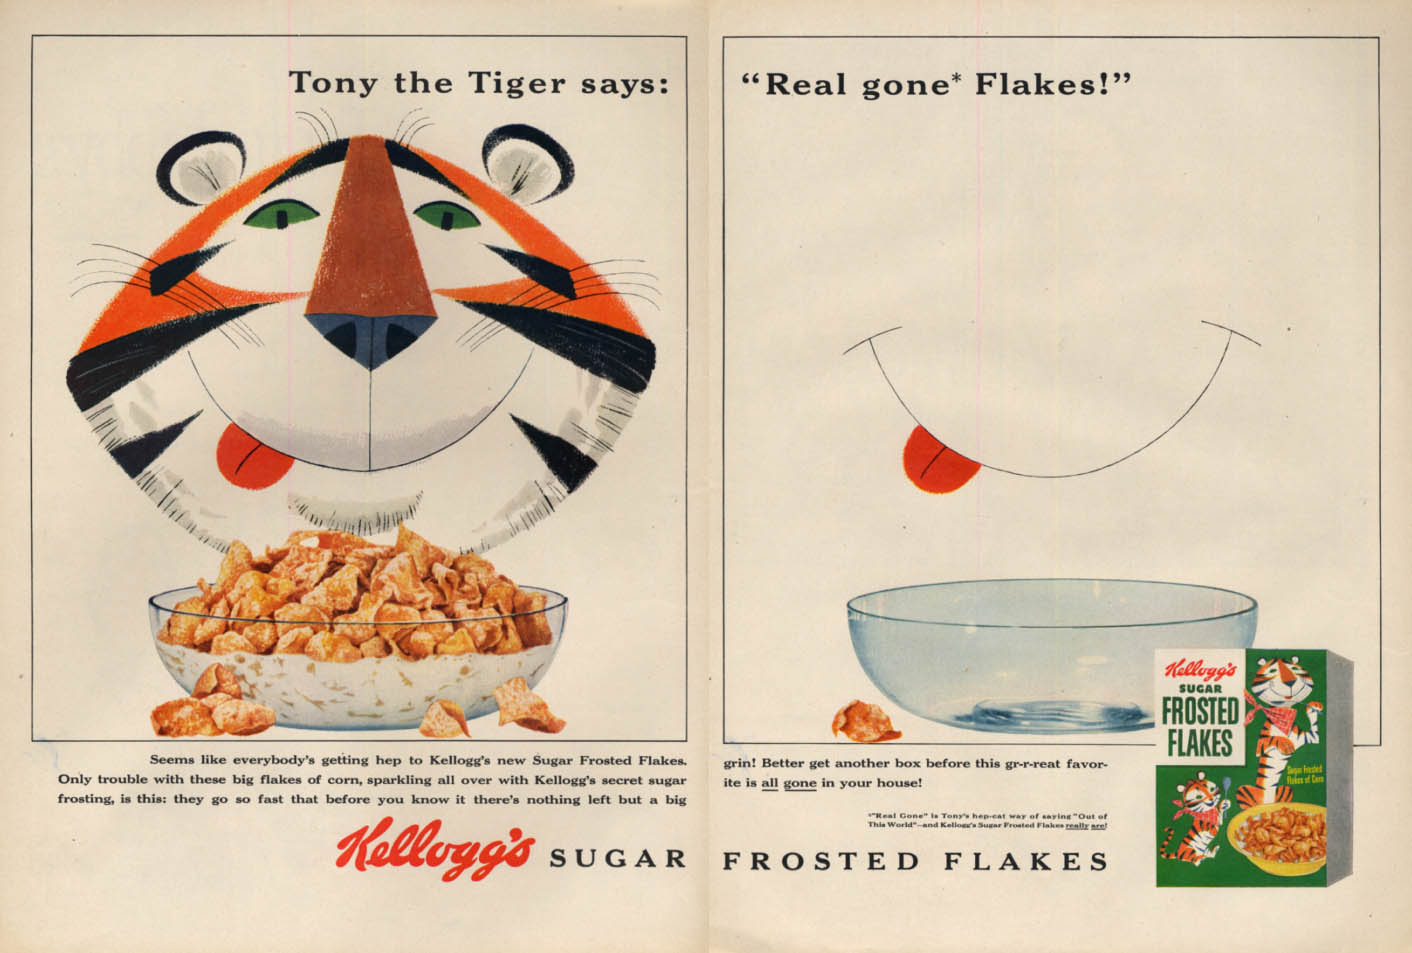 Image for Tony the Tiger says Real gone Flakes! Kellogg's Sugar Frosted Flakes ad 1954 L